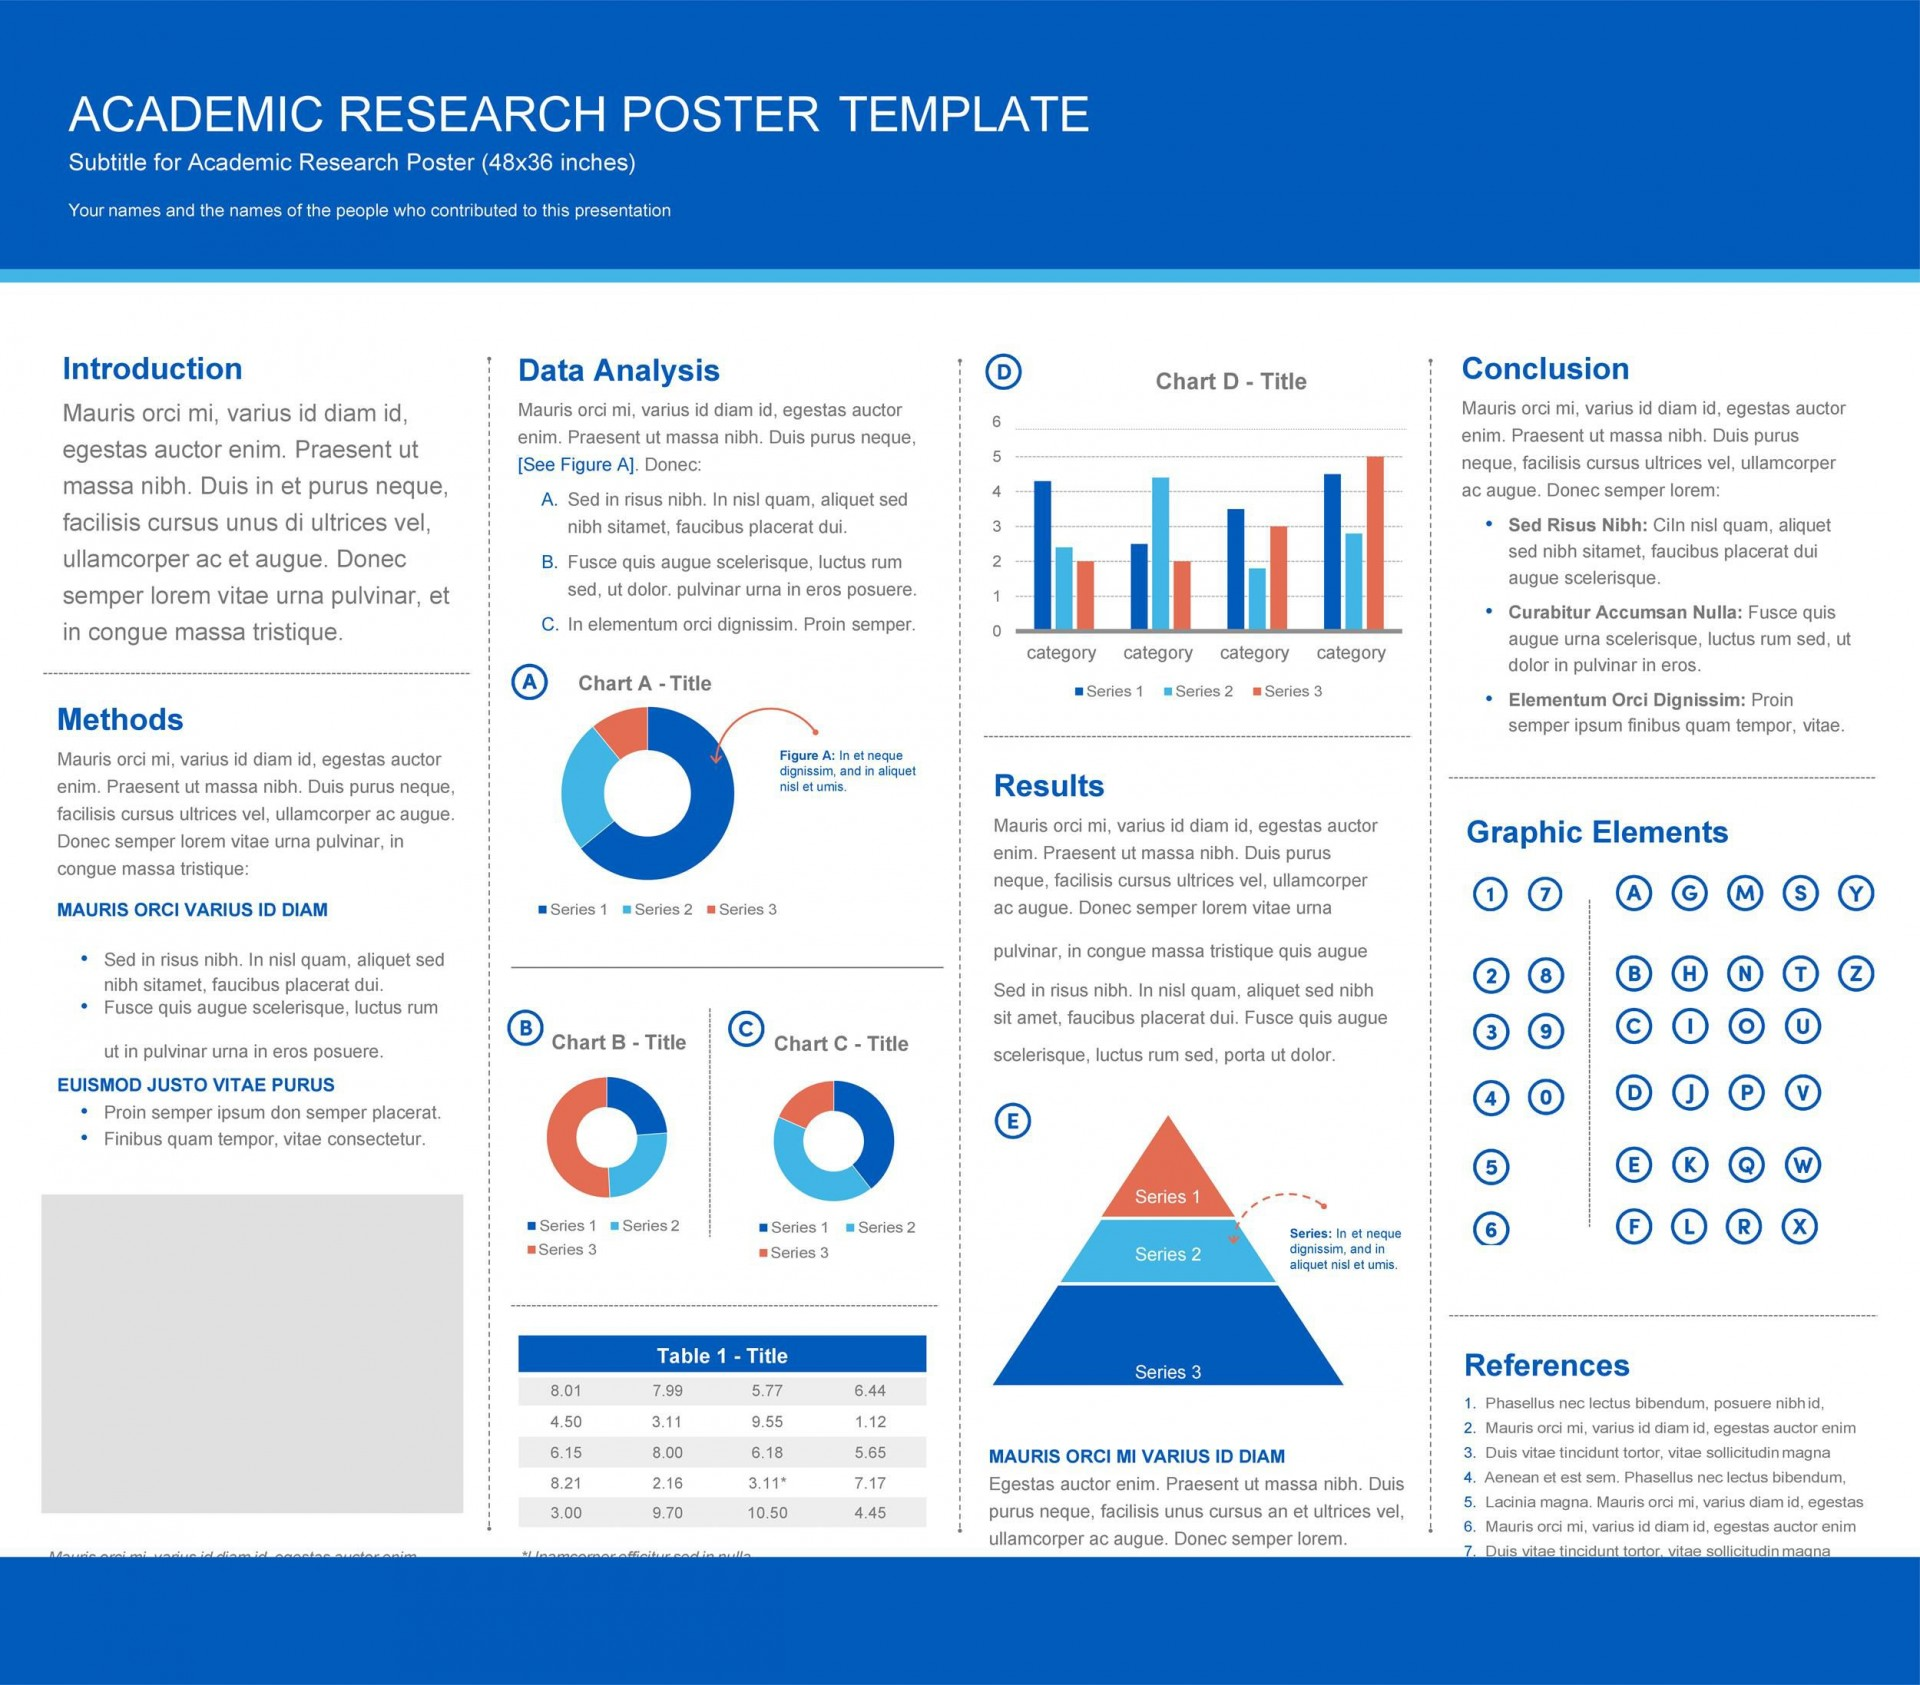 007 Staggering Scientific Poster Design Template Free Download Image 1920